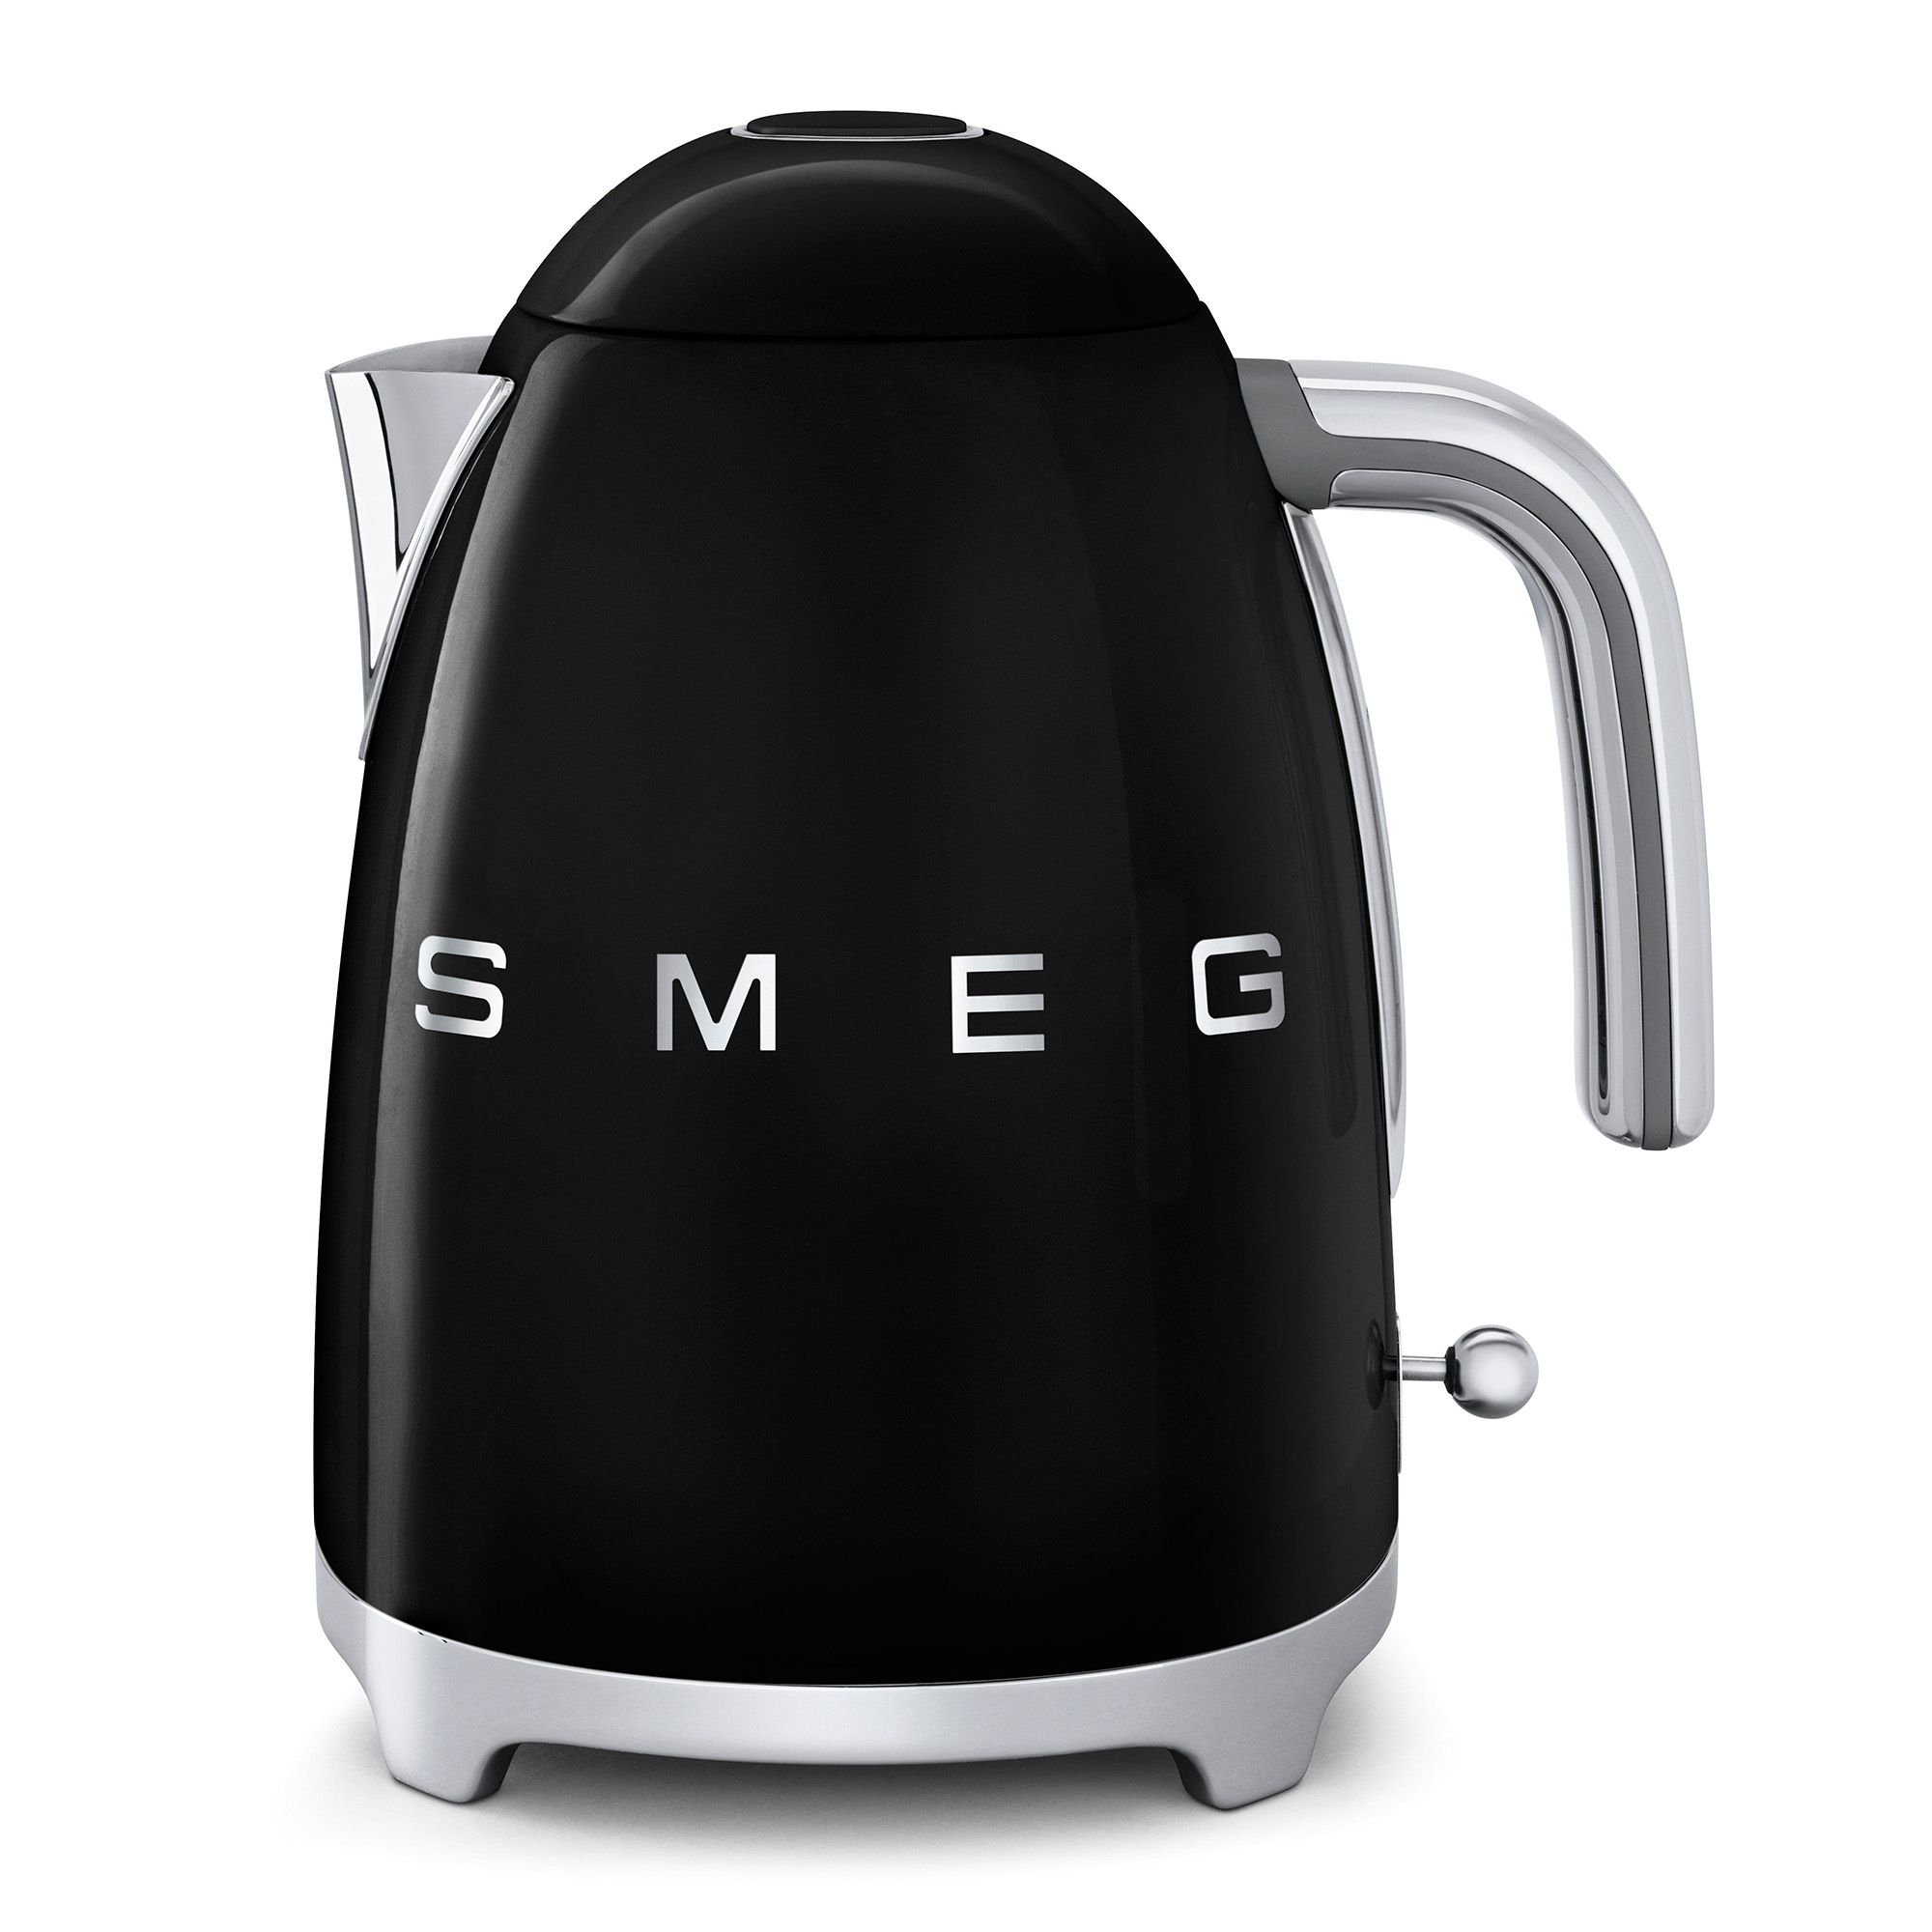 Photo of SMEG 50's Retro Style 7-Cup Electric Kettle black